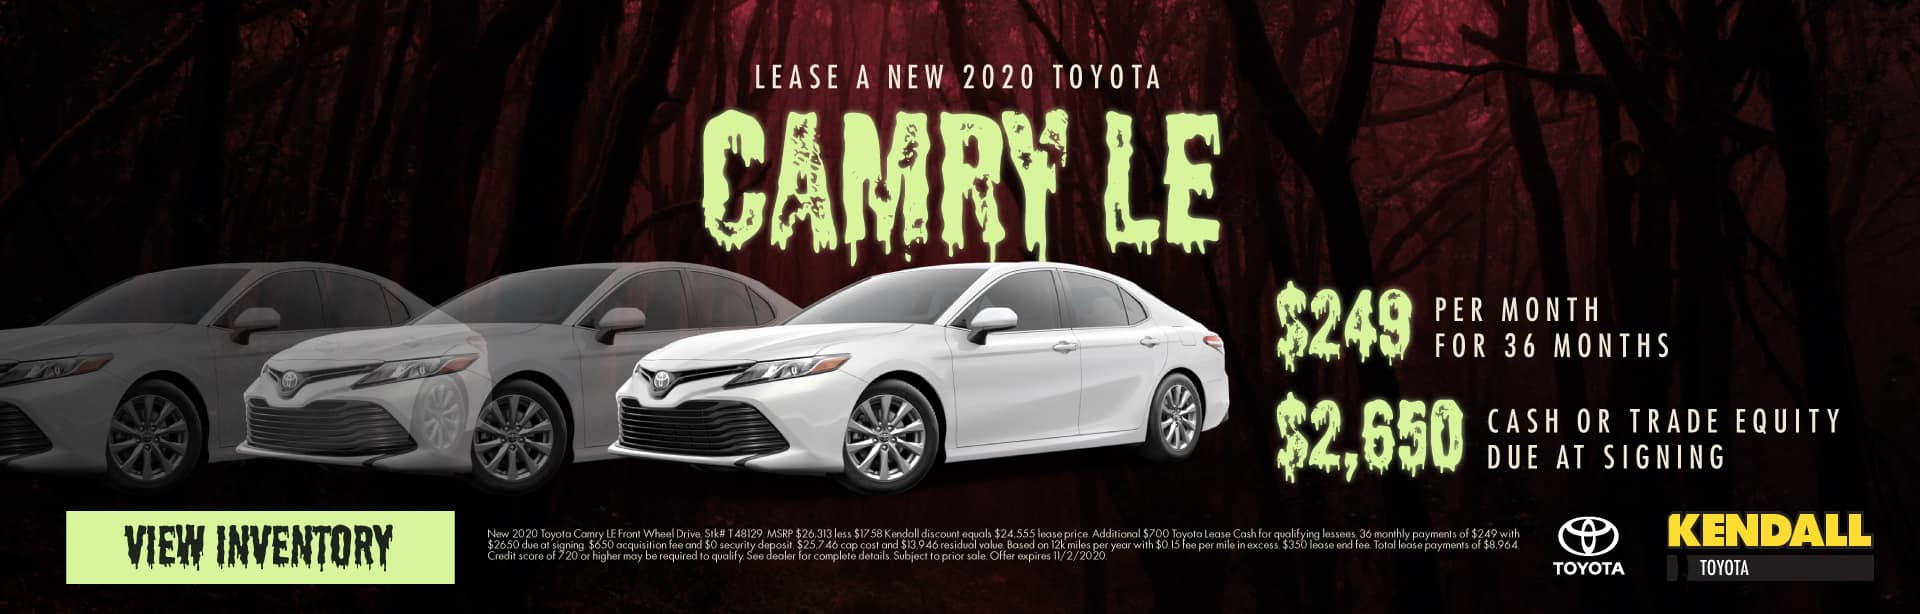 16747-eugtoy-Oct20-Web-Banners-CAMRY